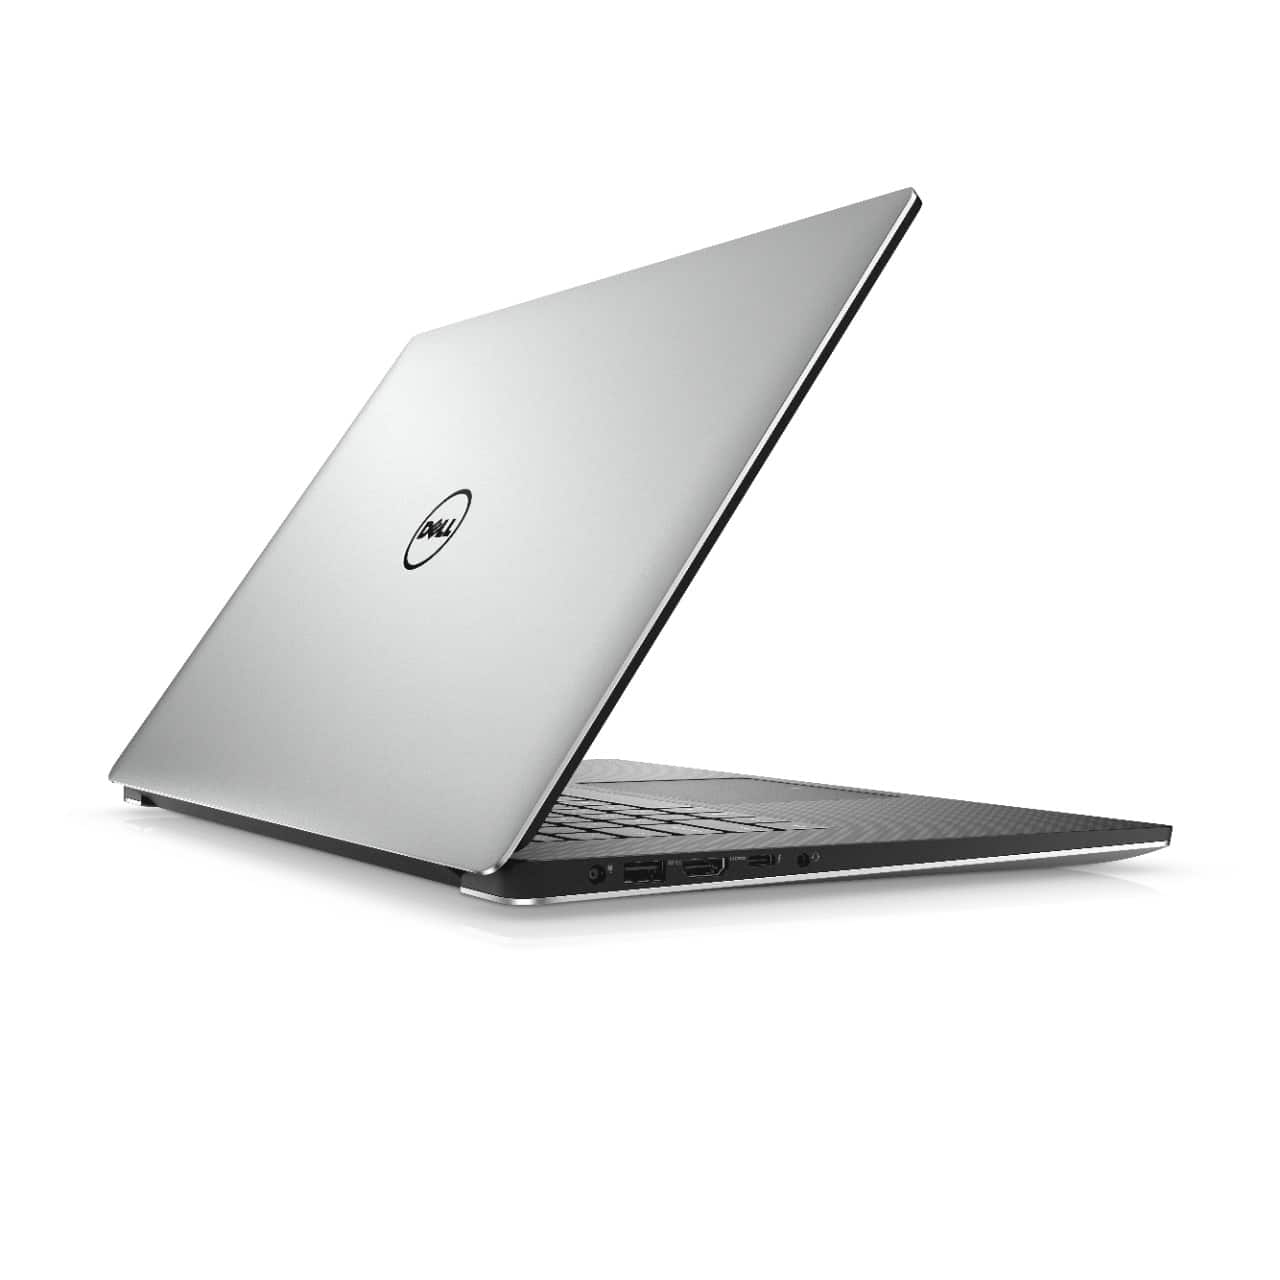 Dell Outlet - Dell XPS 9560 certified refurbished i7-7700HQ, 16GB RAM, 512GB NvME SSD, 4k Touch Display, GTX 1050 4GB for $1134 + tax (using chat)